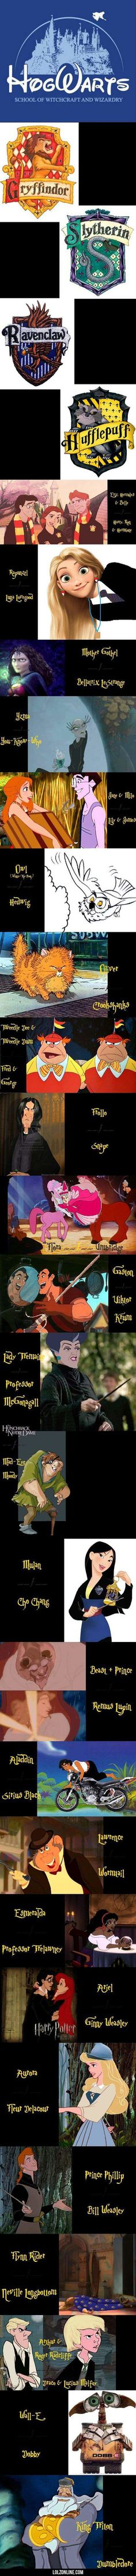 If Harry Potter was made by Disney #lol